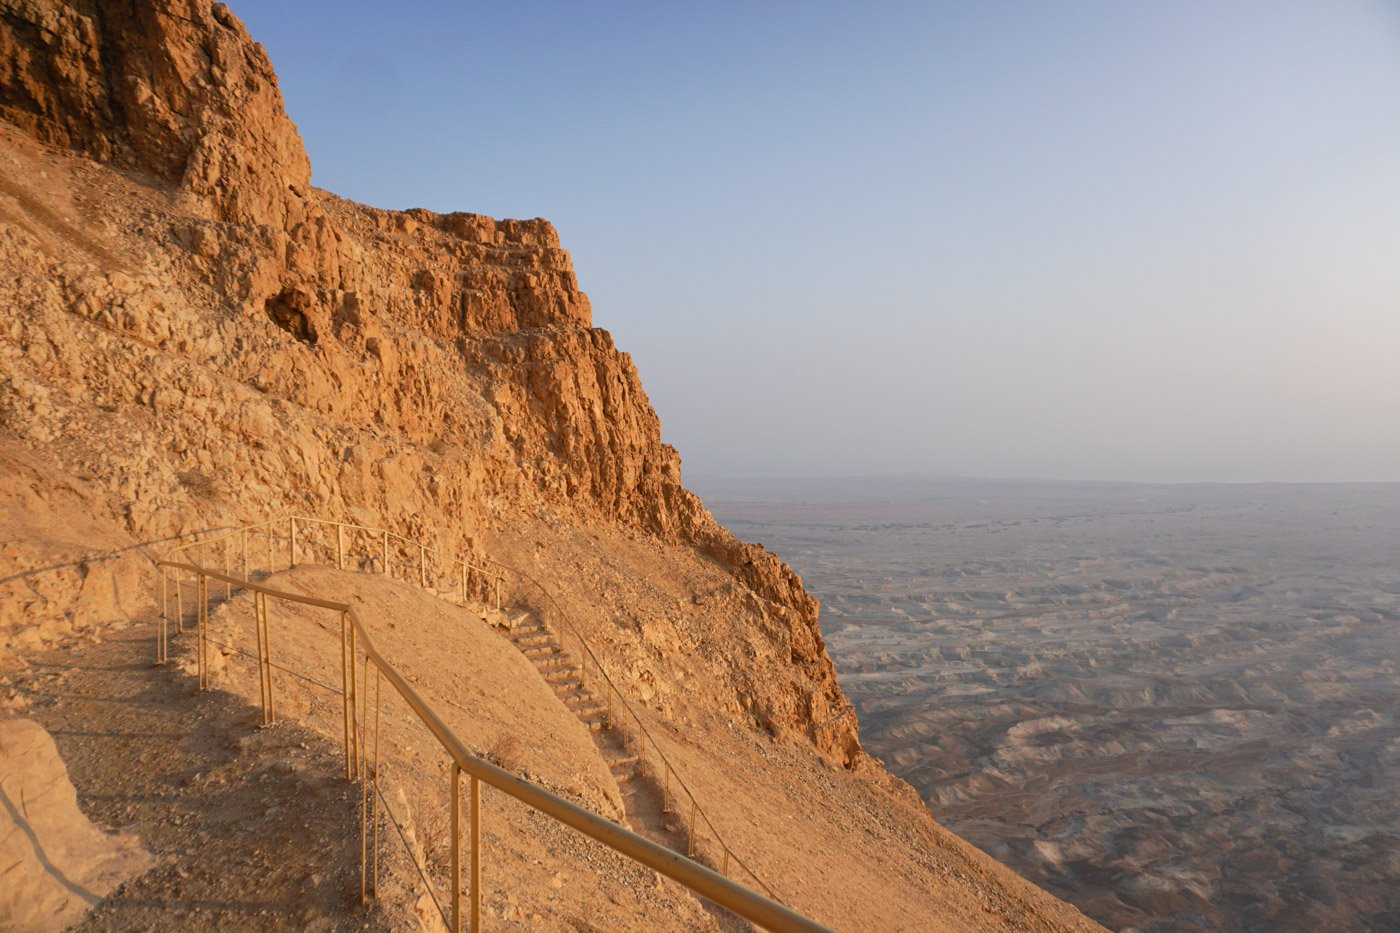 If you consider yourself a non-hiker and you're thinking about hiking the snake path of Masada in Israel, here's what you'll need to know